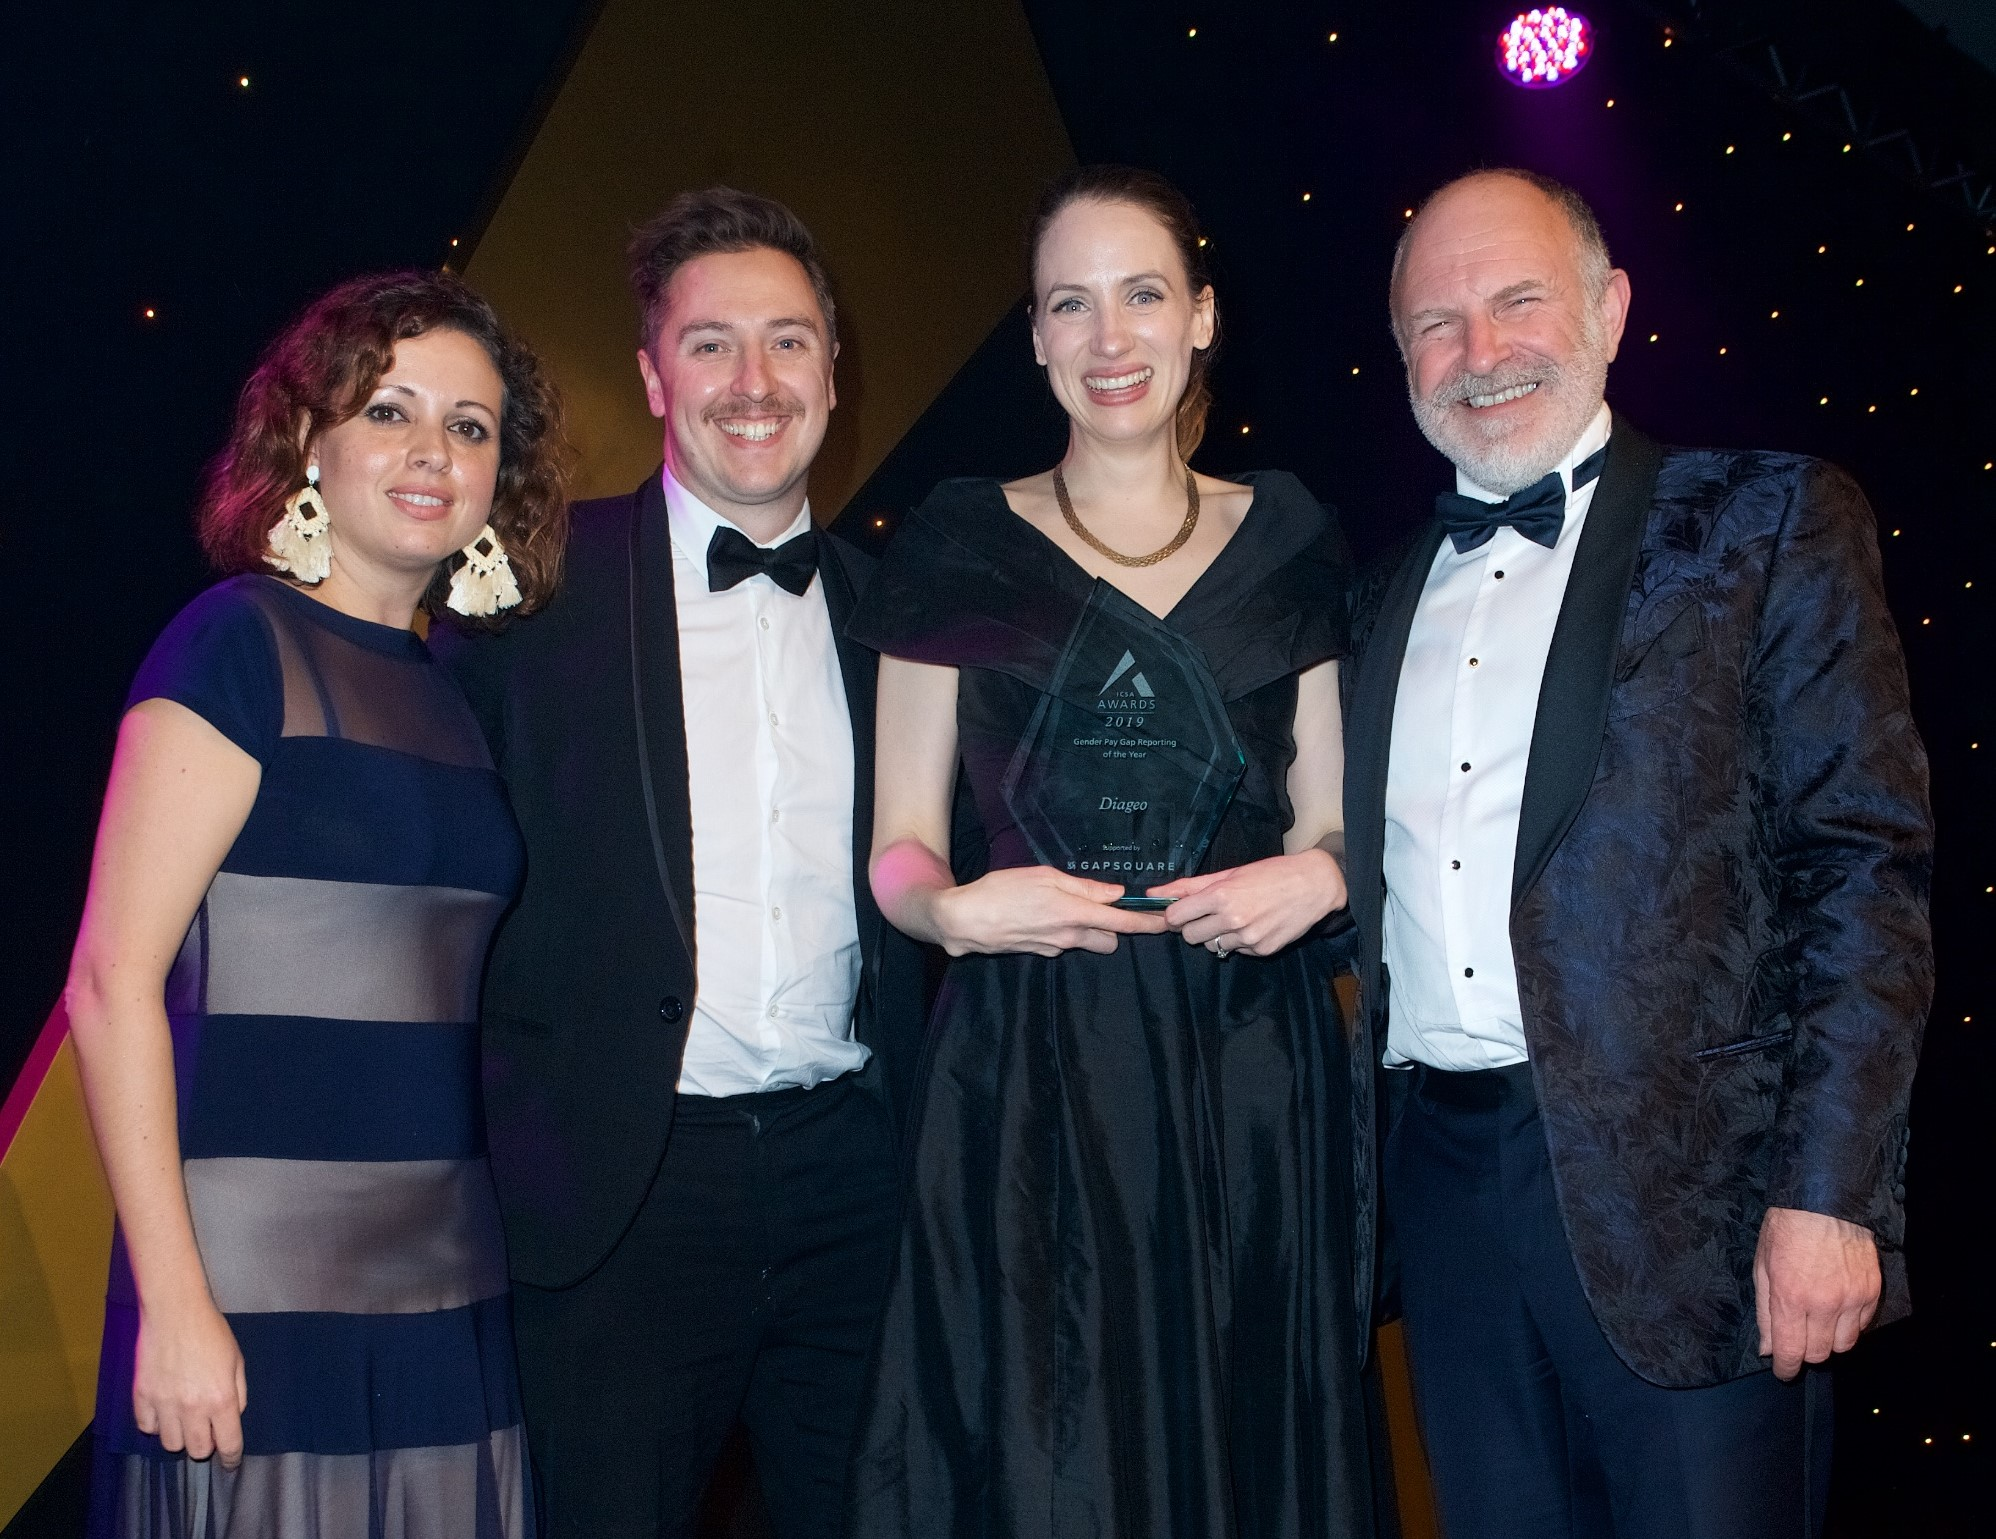 ICSA Awards - Gender Pay Gap Reporting of the Year